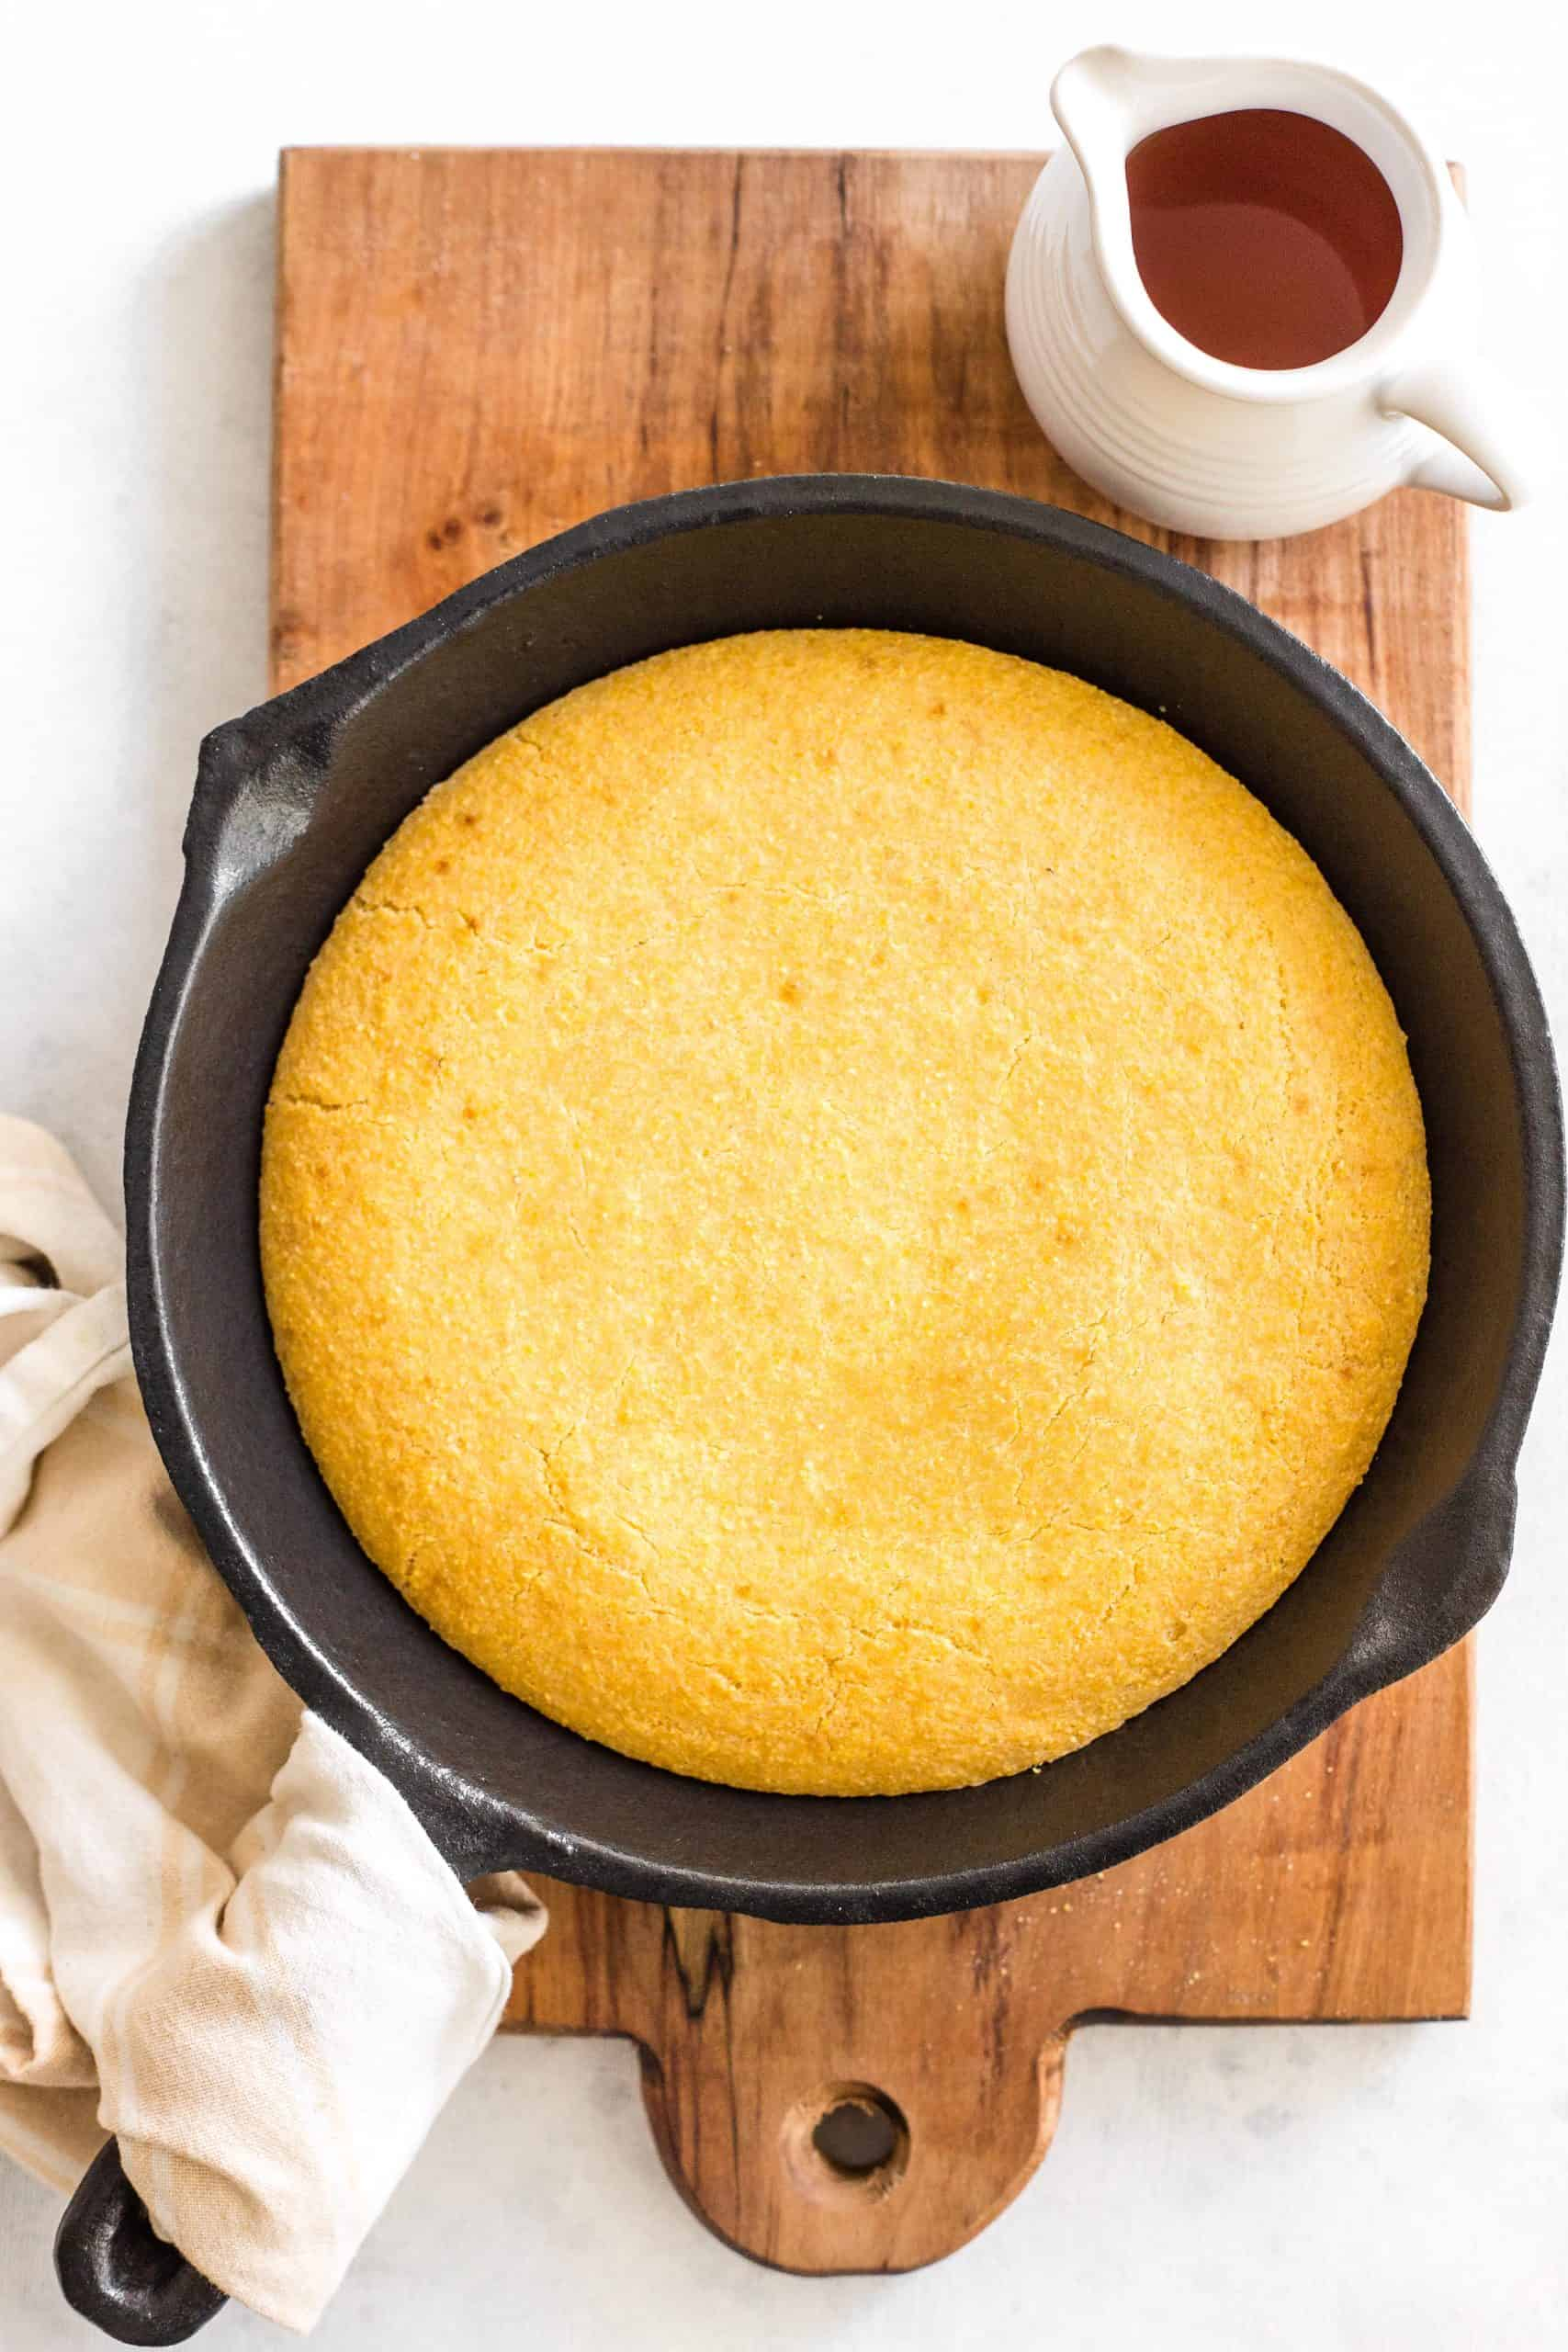 A skillet with cornbread on a wooden board.